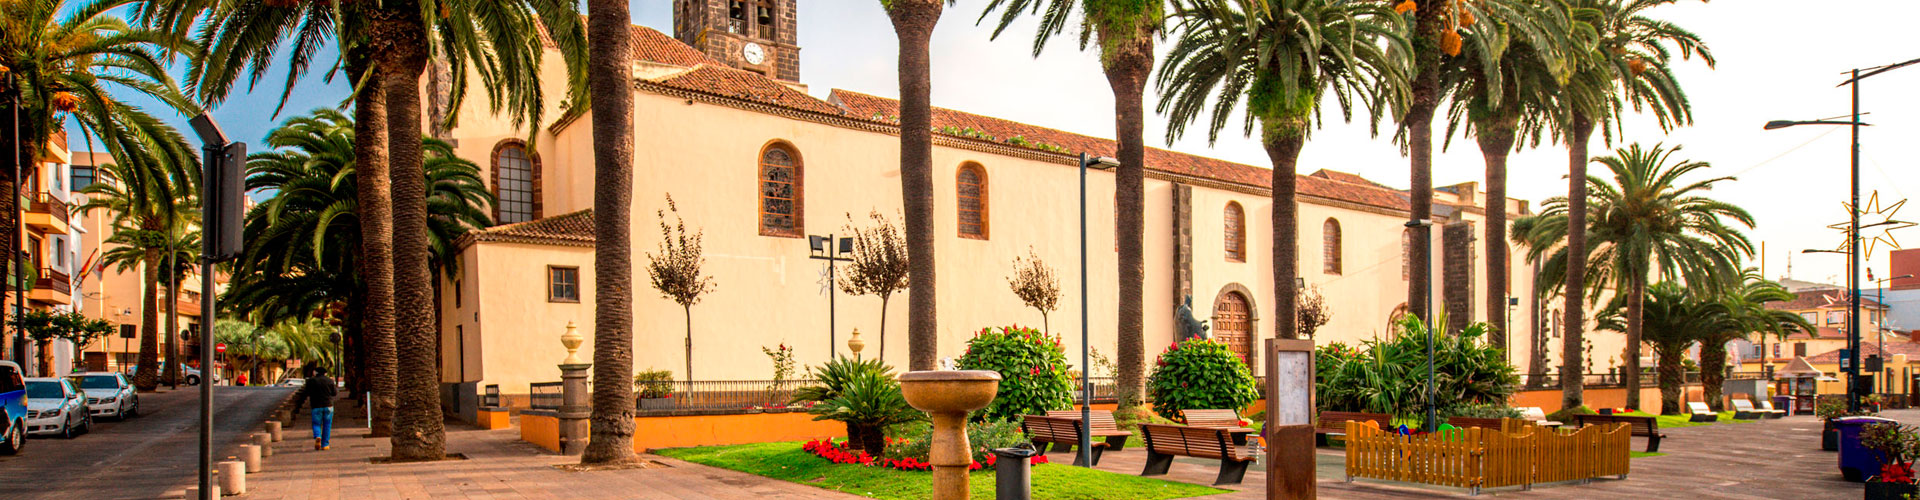 Visit La Laguna in the north of Tenerife